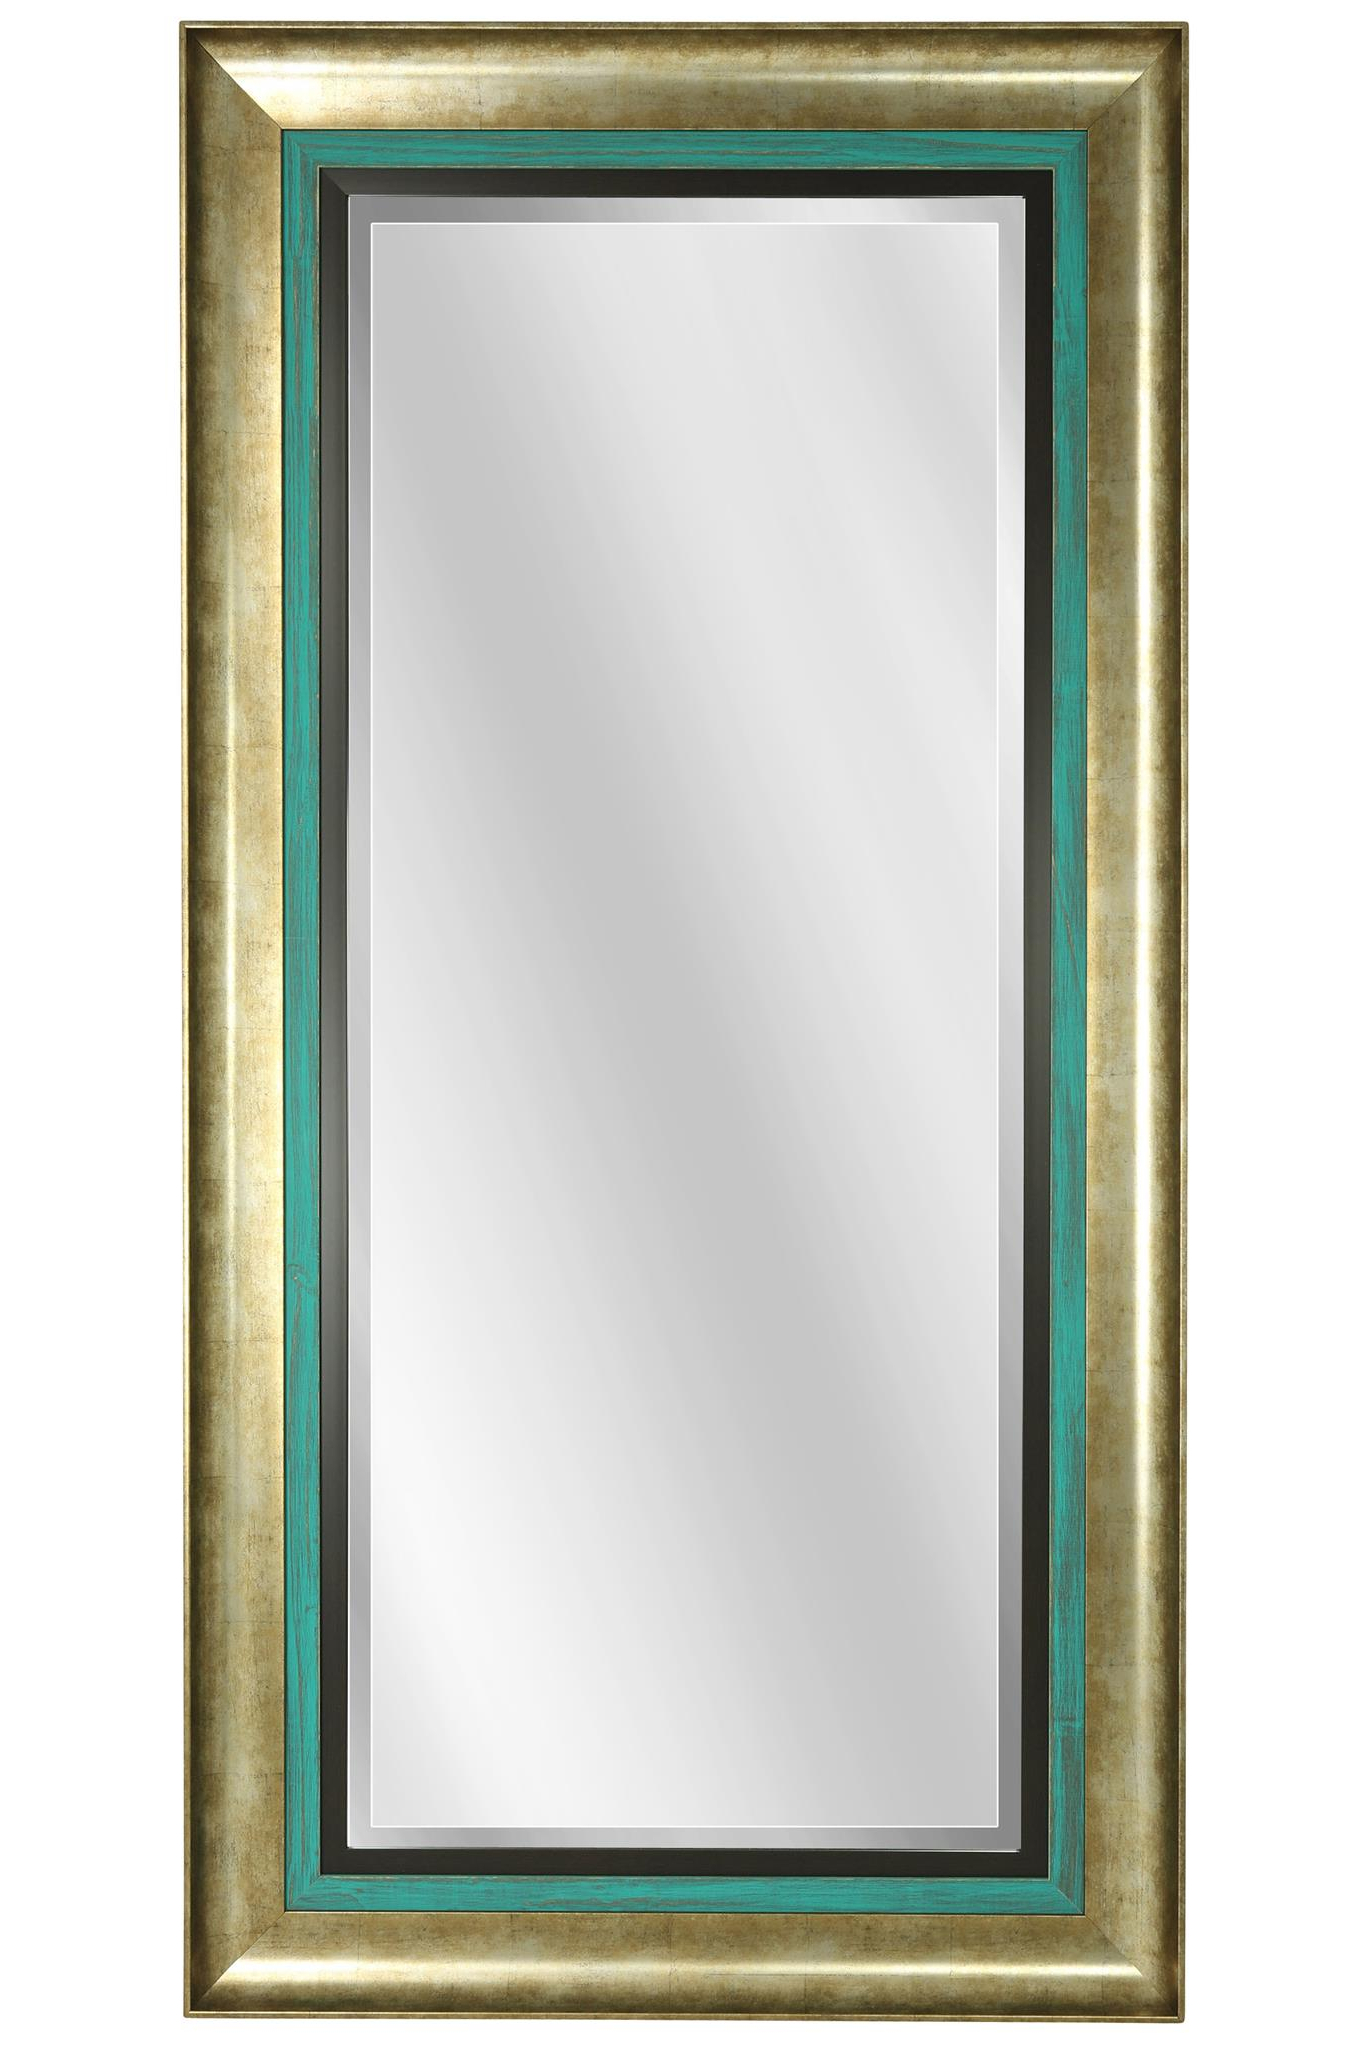 Well Known Gold And Turquoise Framed Wall Mirror Within Gold Framed Wall Mirrors (View 8 of 20)